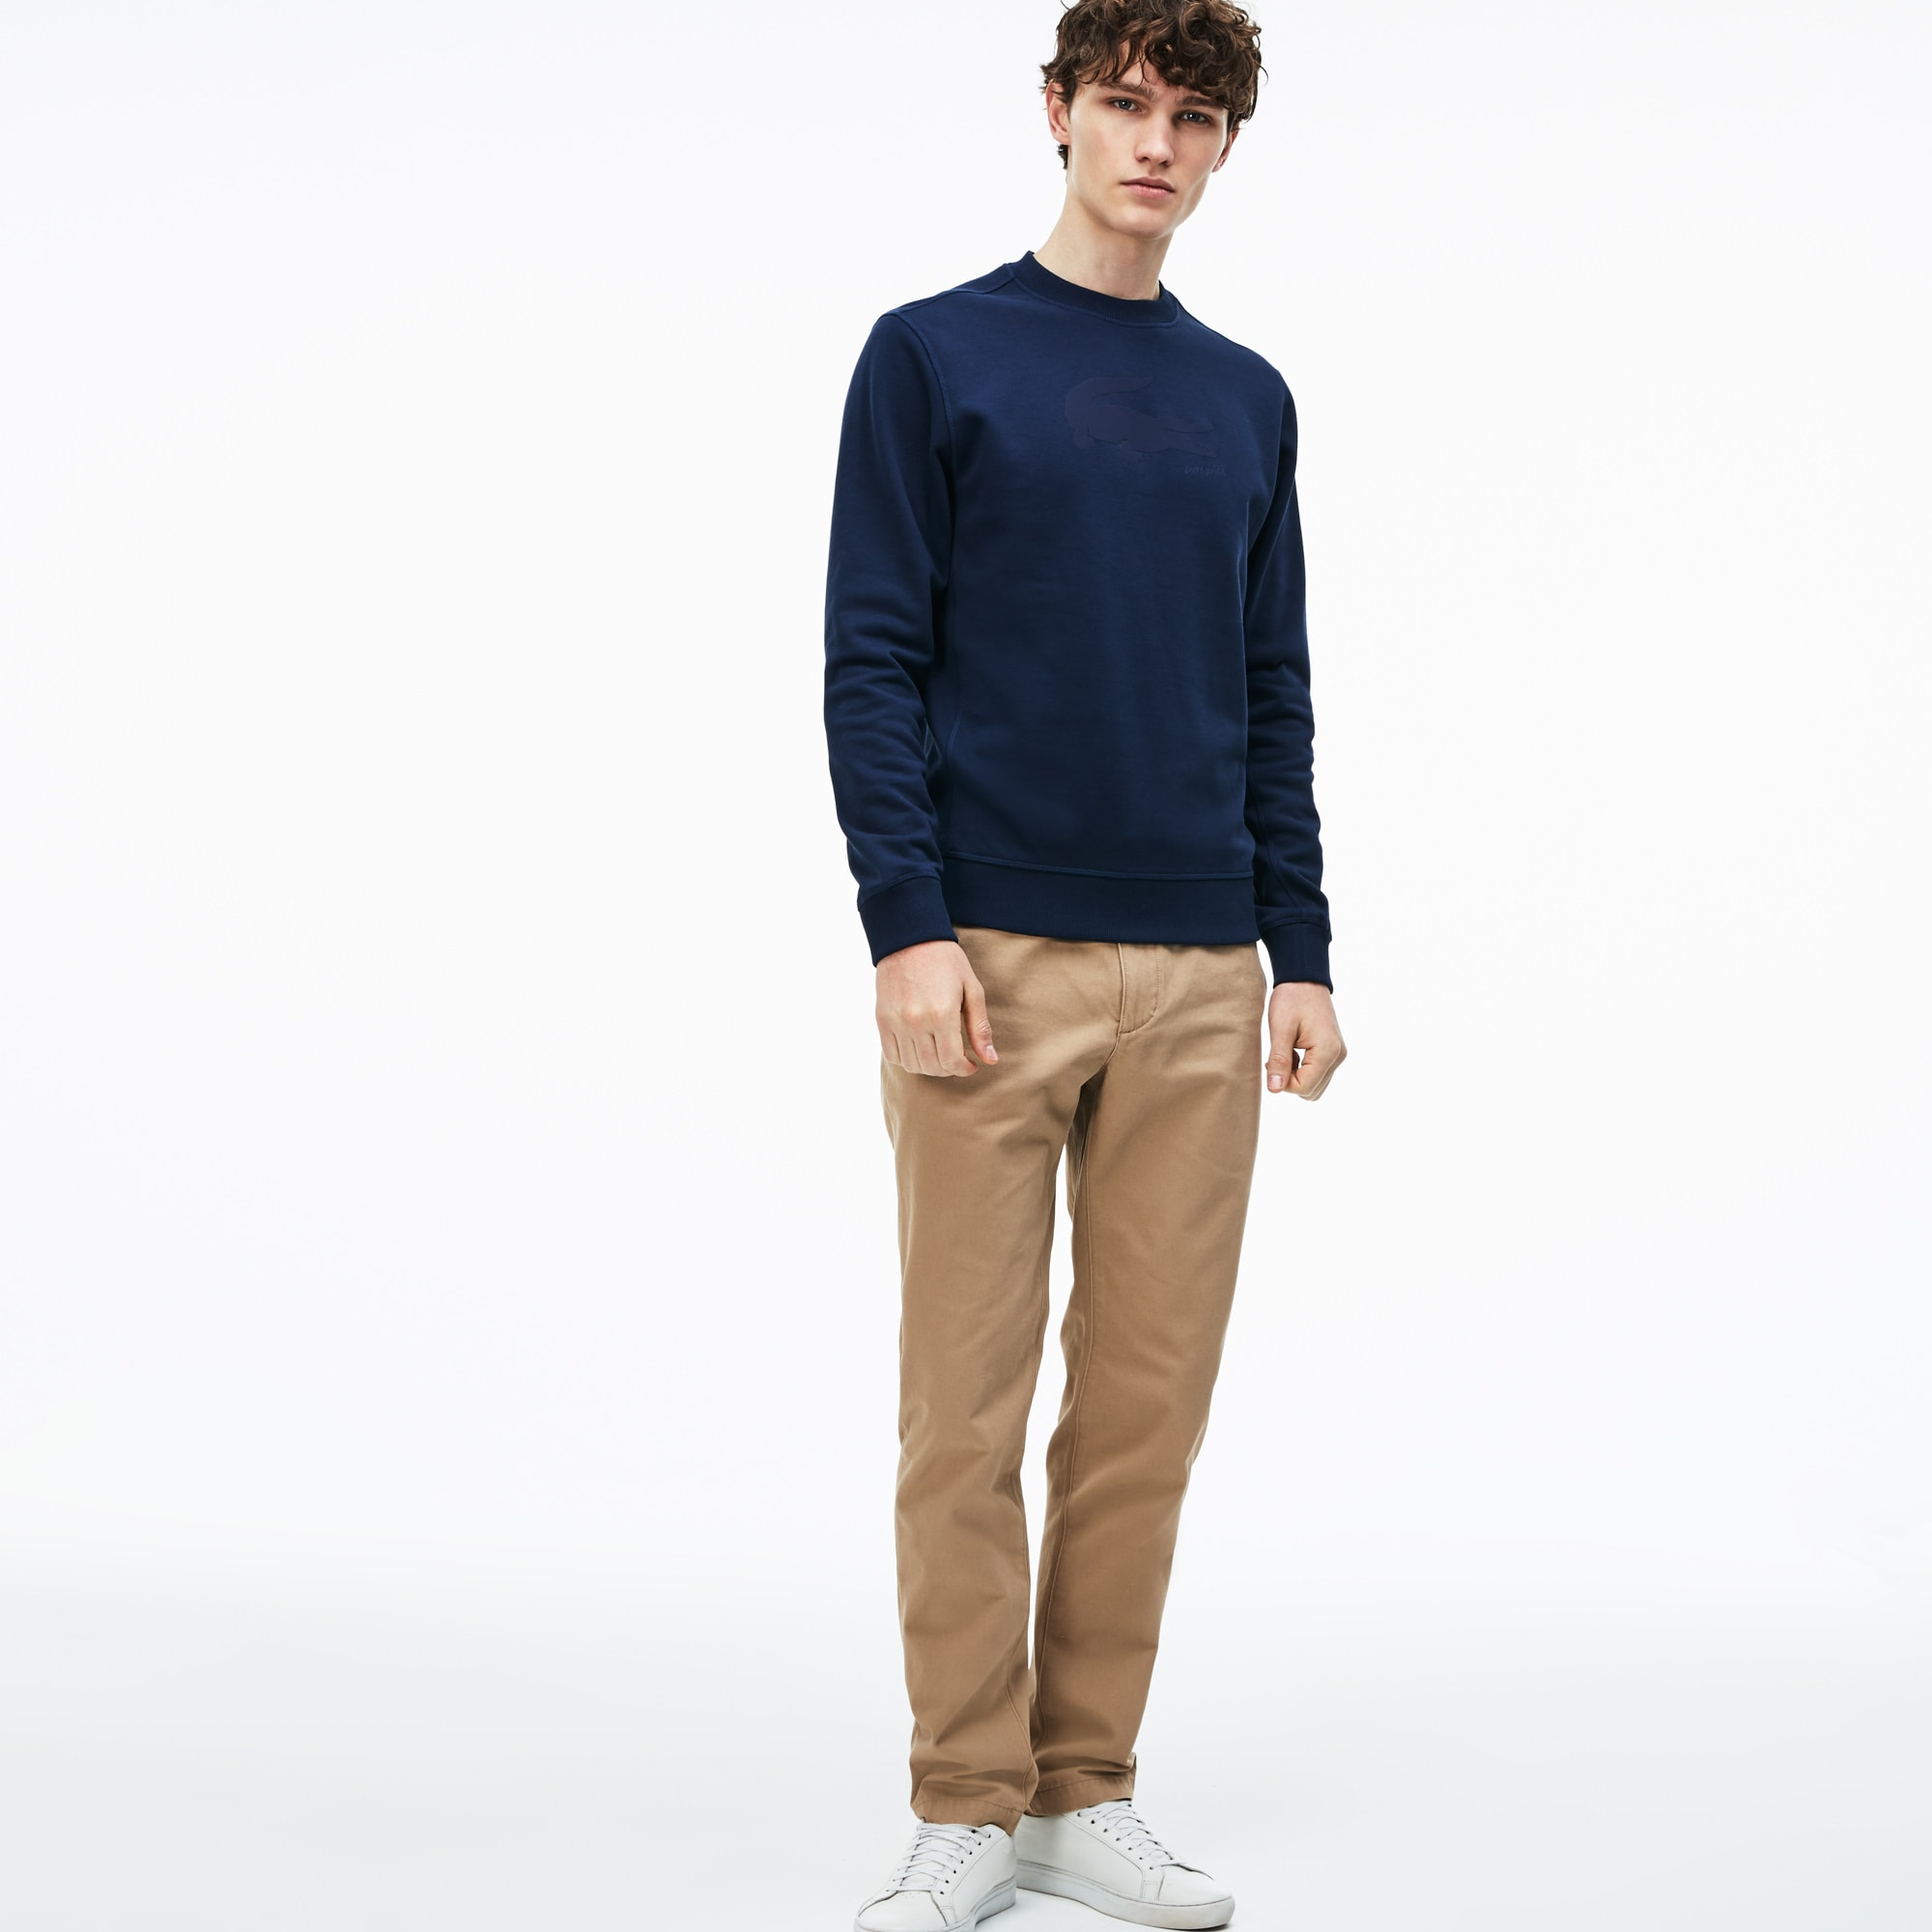 Pantalon chino regular fit en gabardine de coton unie